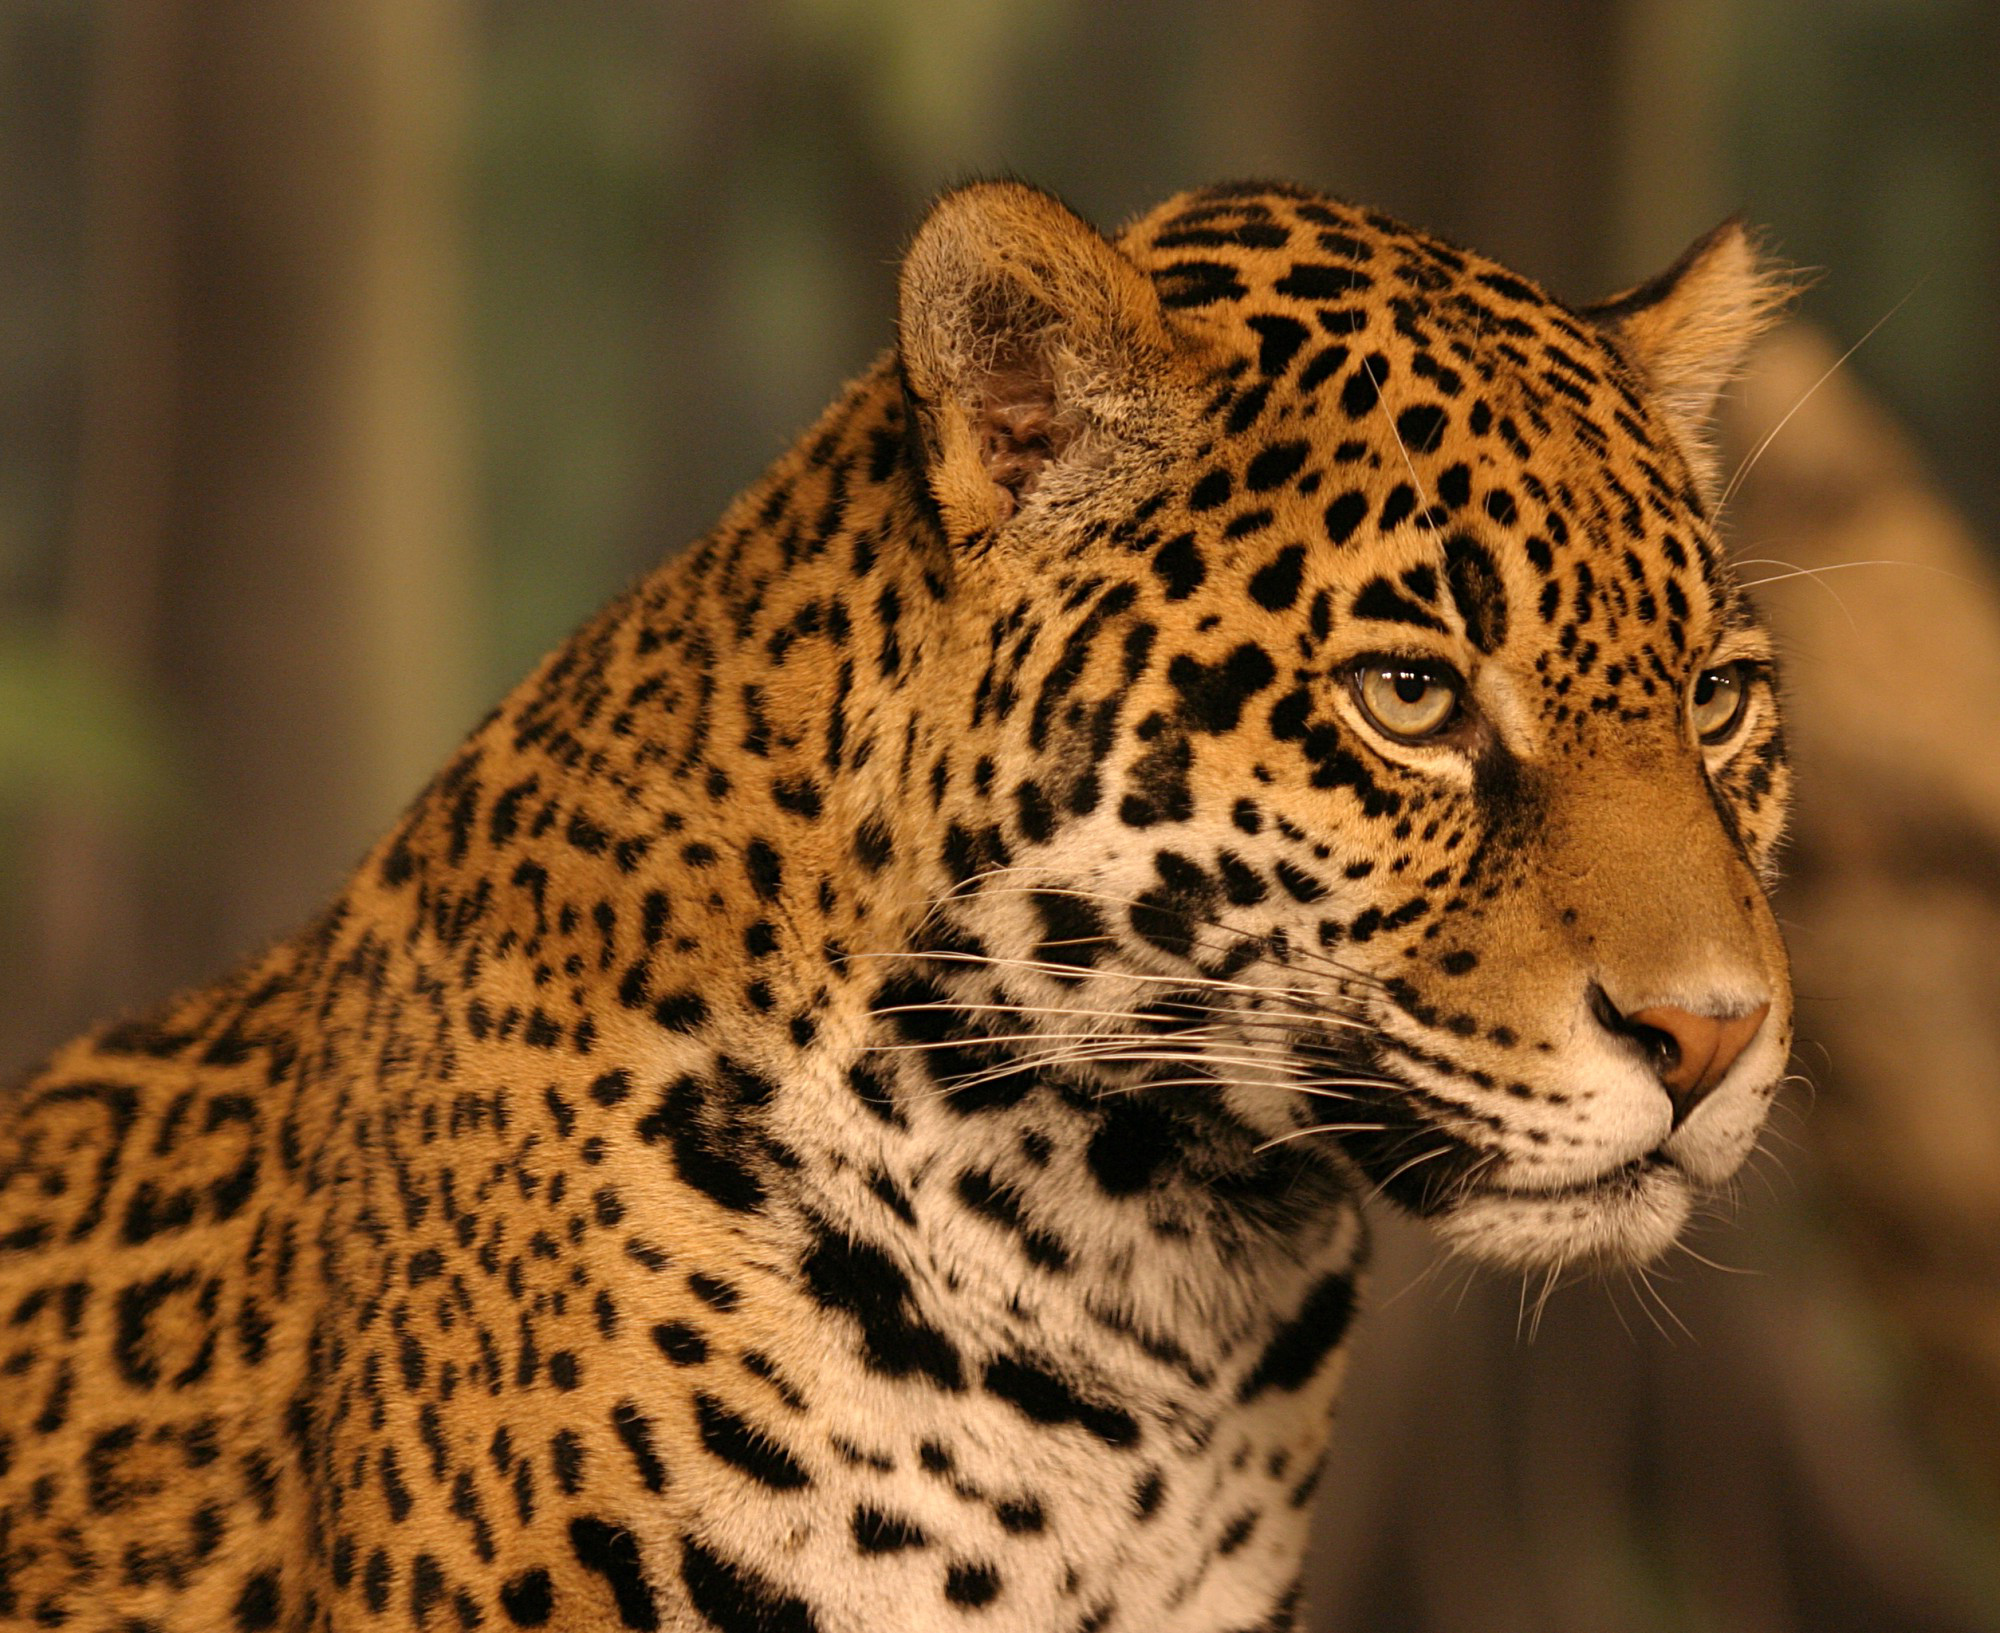 Jaguar wallpapers hd wallpapersafari - Jaguar animal hd wallpapers ...